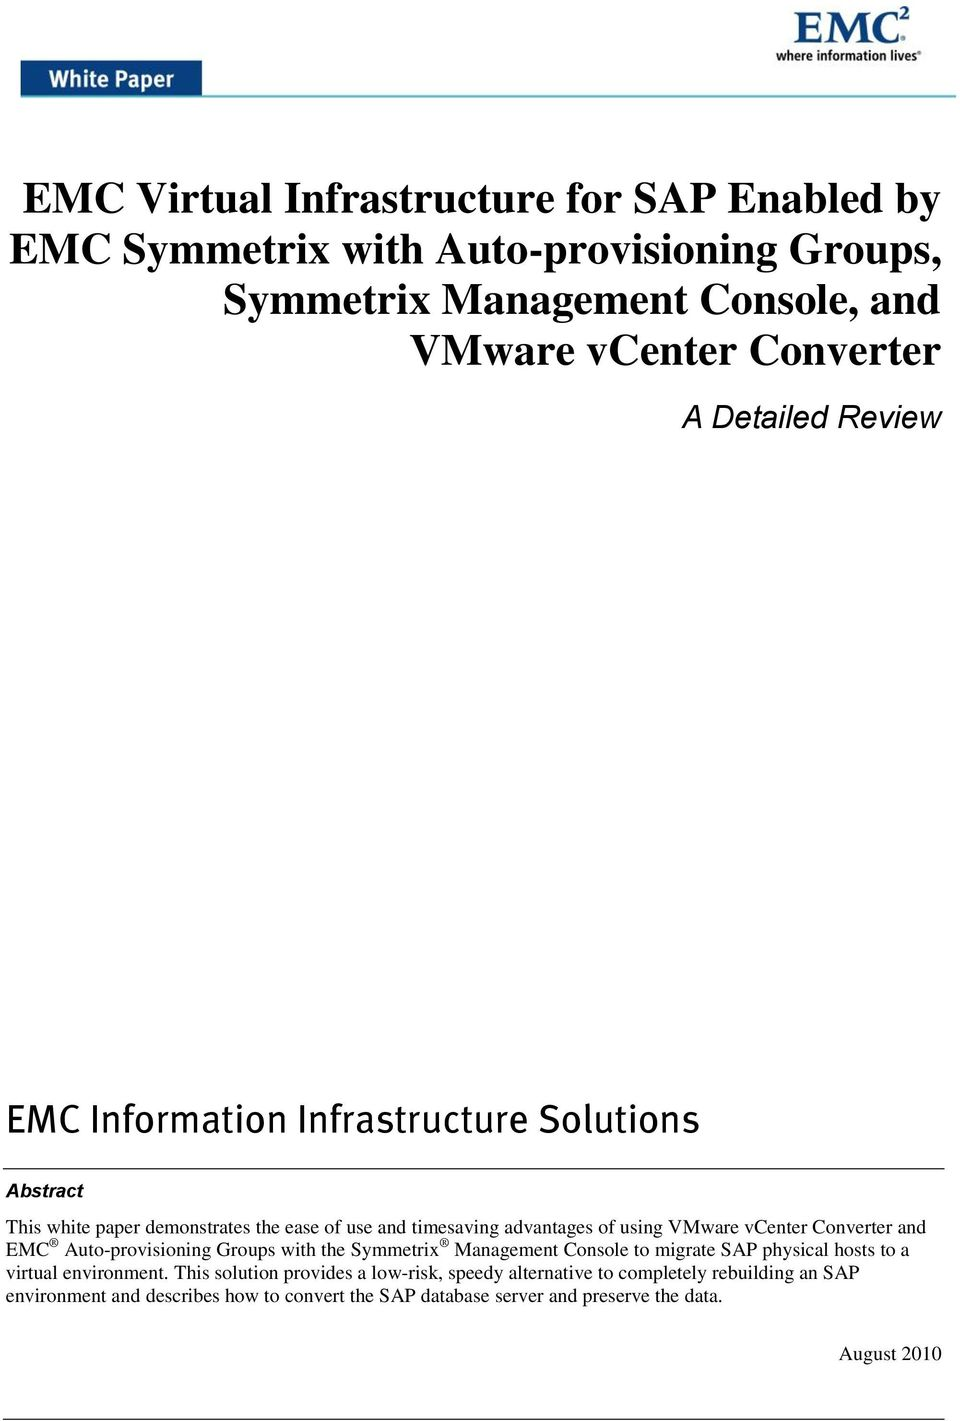 Auto-provisioning Groups with the Symmetrix Management Console to migrate SAP physical hosts to a virtual environment.